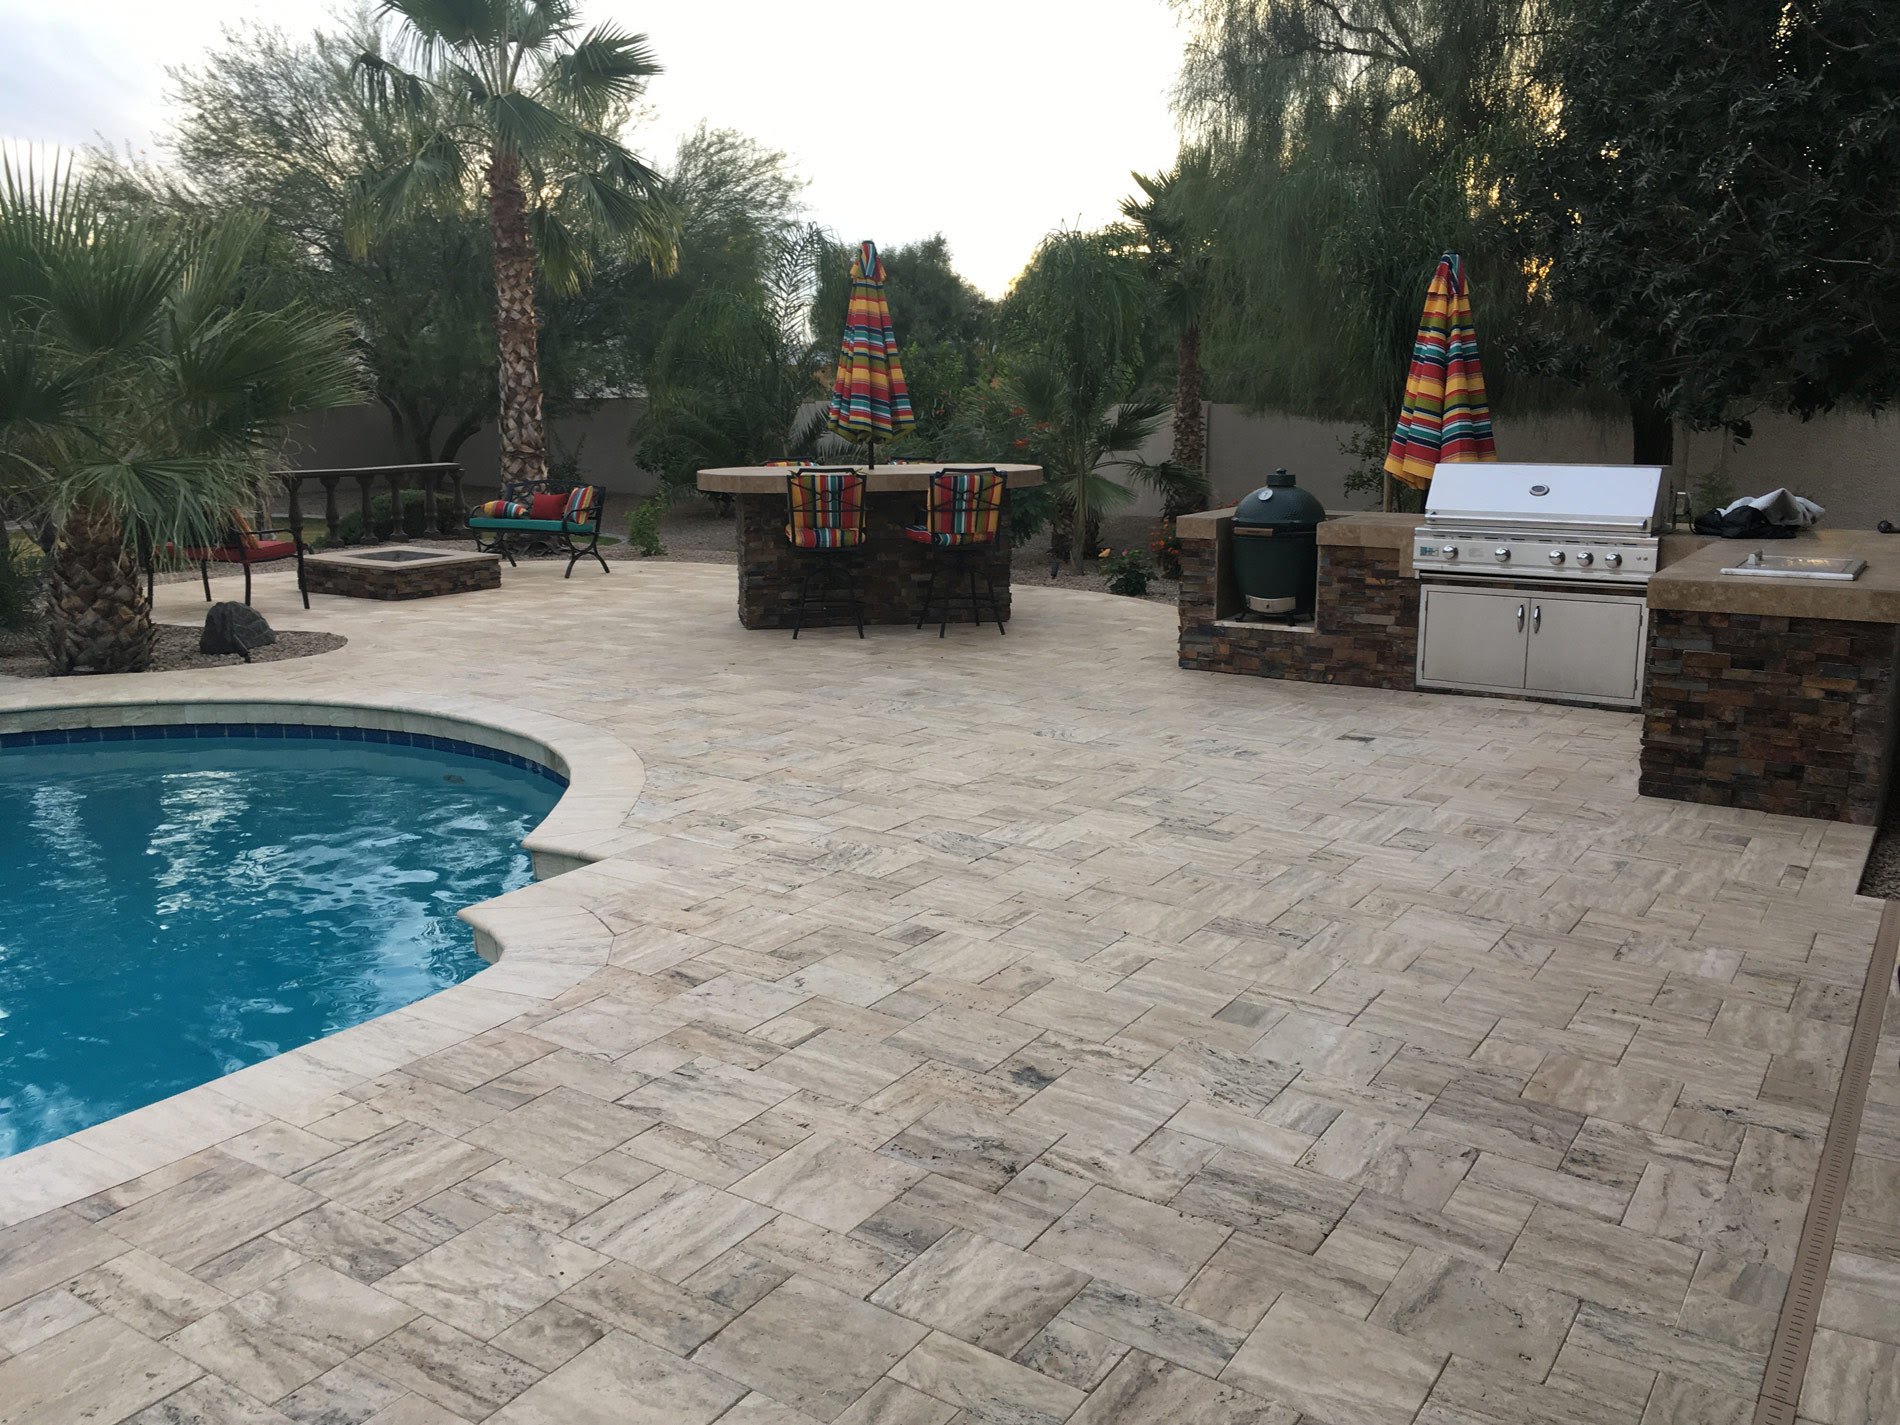 Arizona Backyard Landscape Design Staycation Ready In Queen Creek